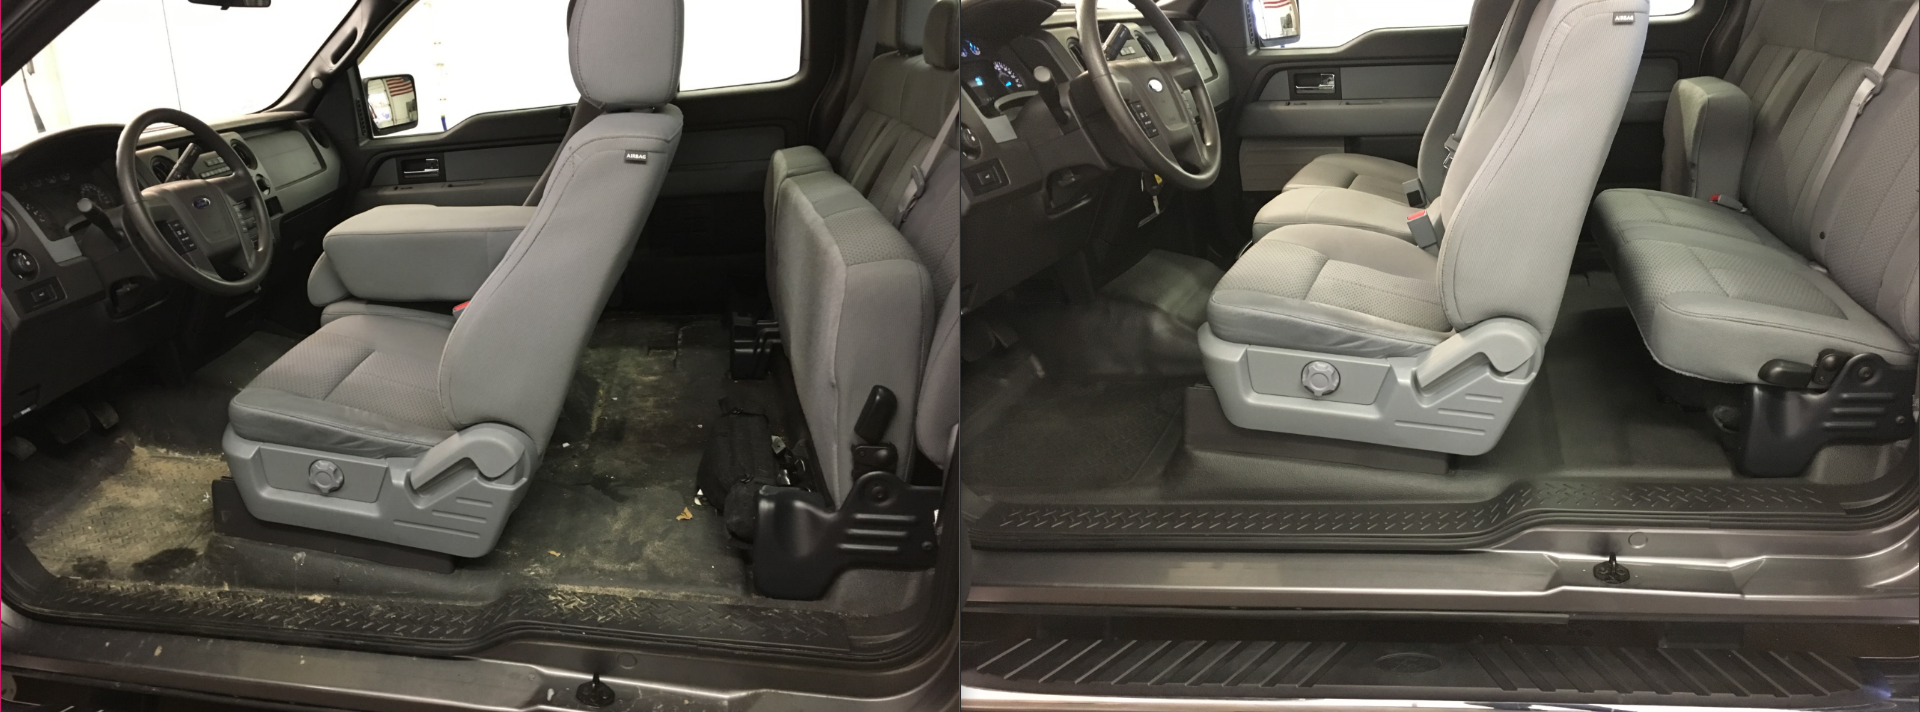 Interior Detail on Ford F-150